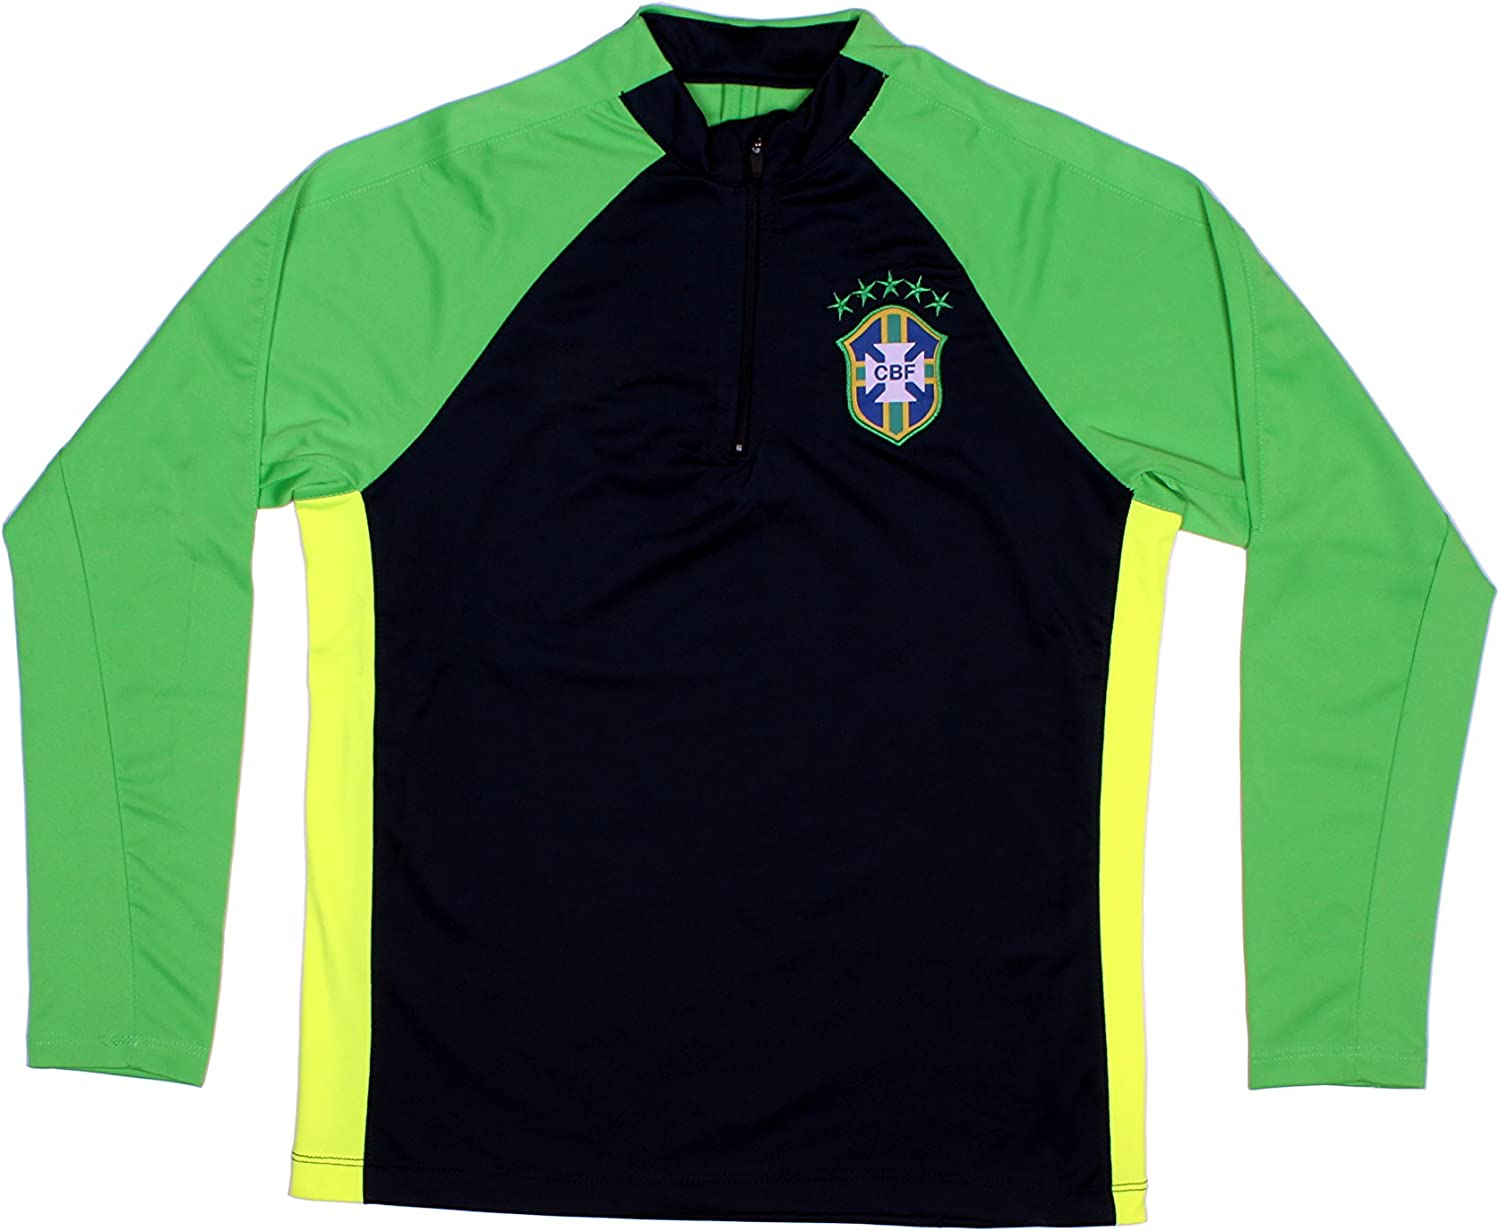 Brazil Jacket Brasil Soccer Kids Youth Half Zip Neymar Tracksuit Football